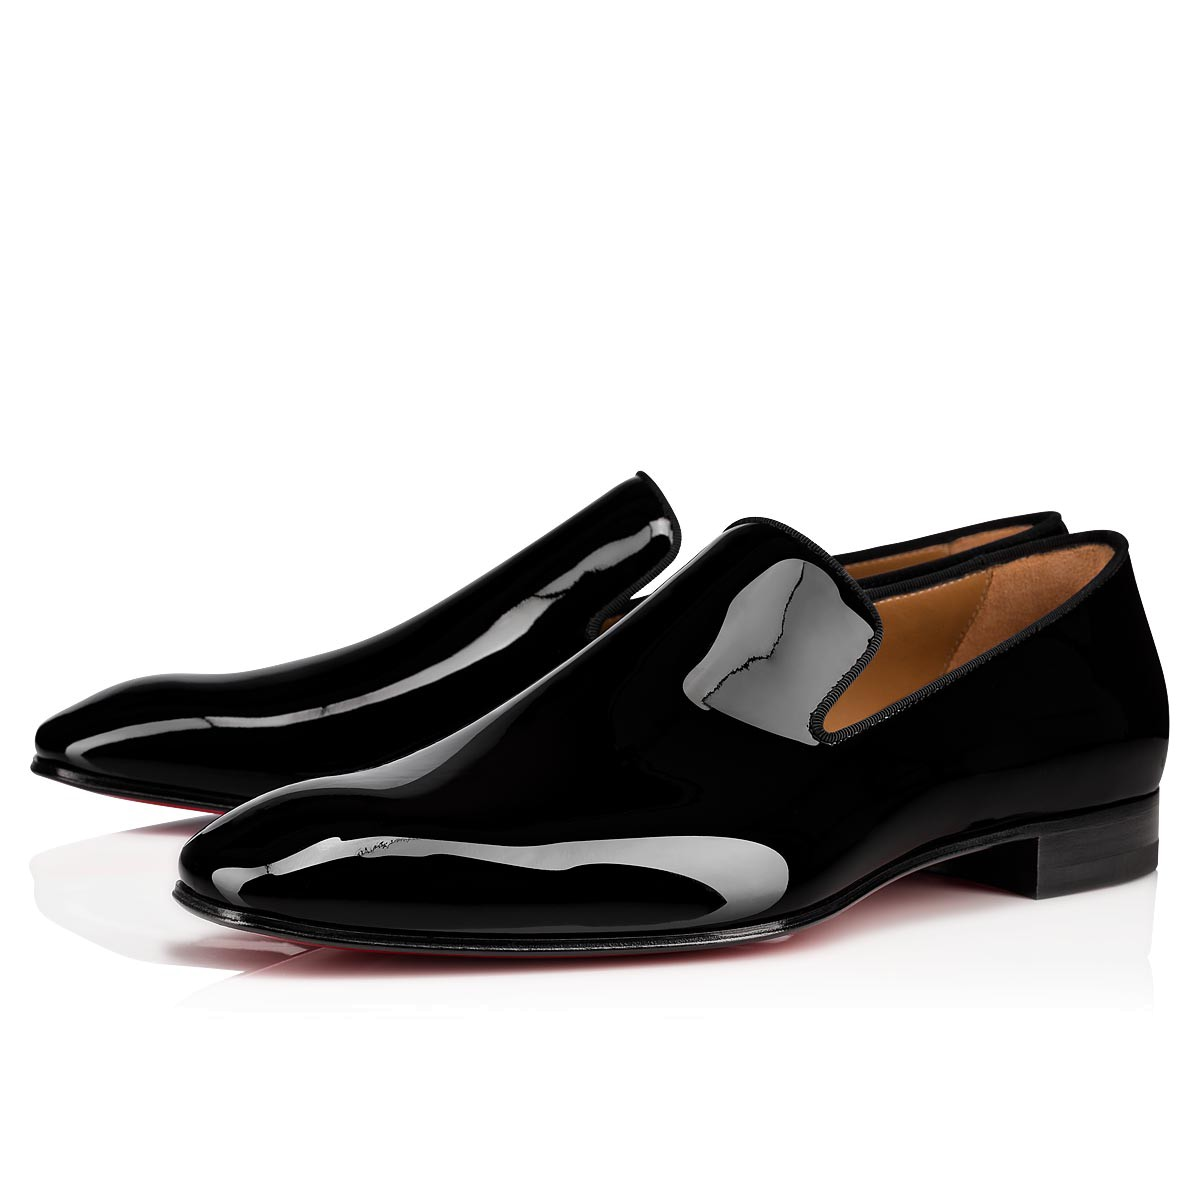 Men Shoes - Dandelion - Christian Louboutin